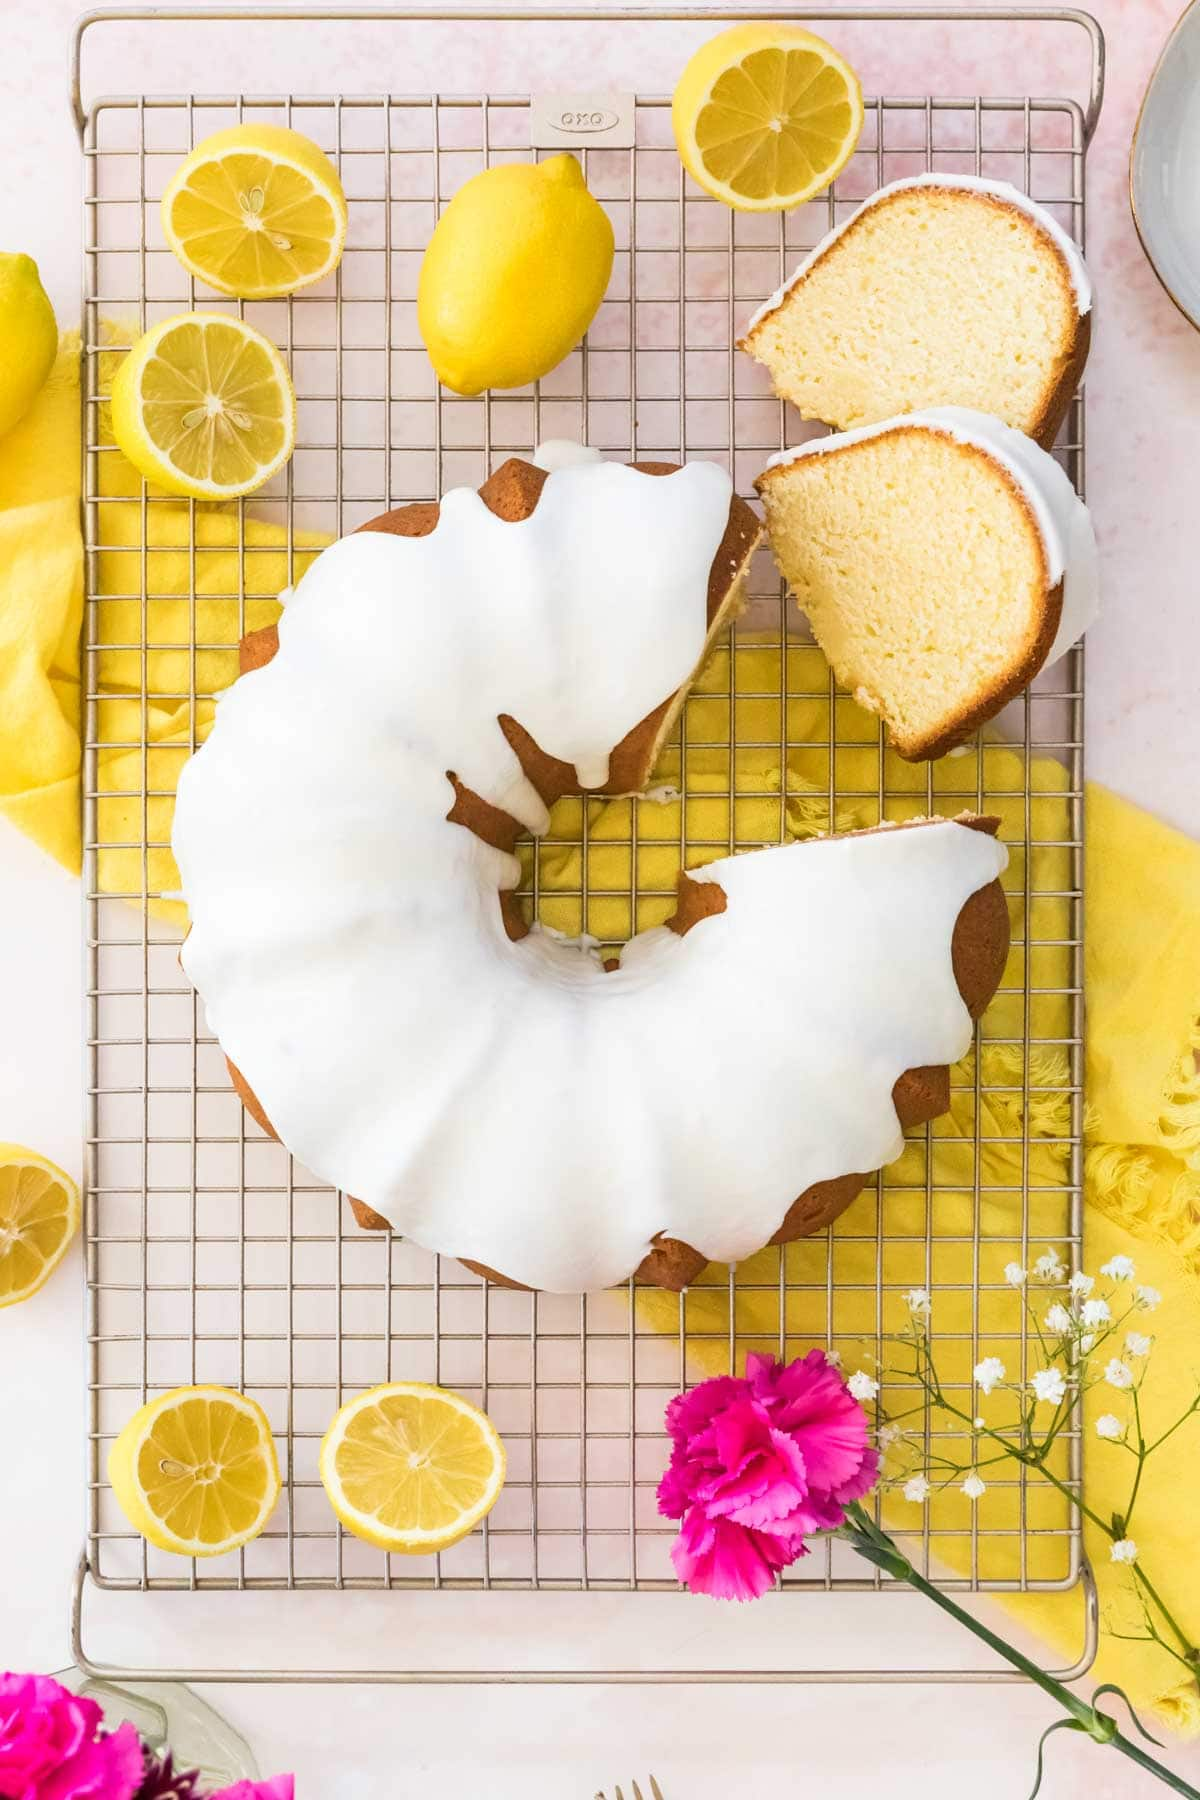 Overhead shot of lemon pound cake on a cooling rack with two pieces cut out and surrounded by cut lemons.